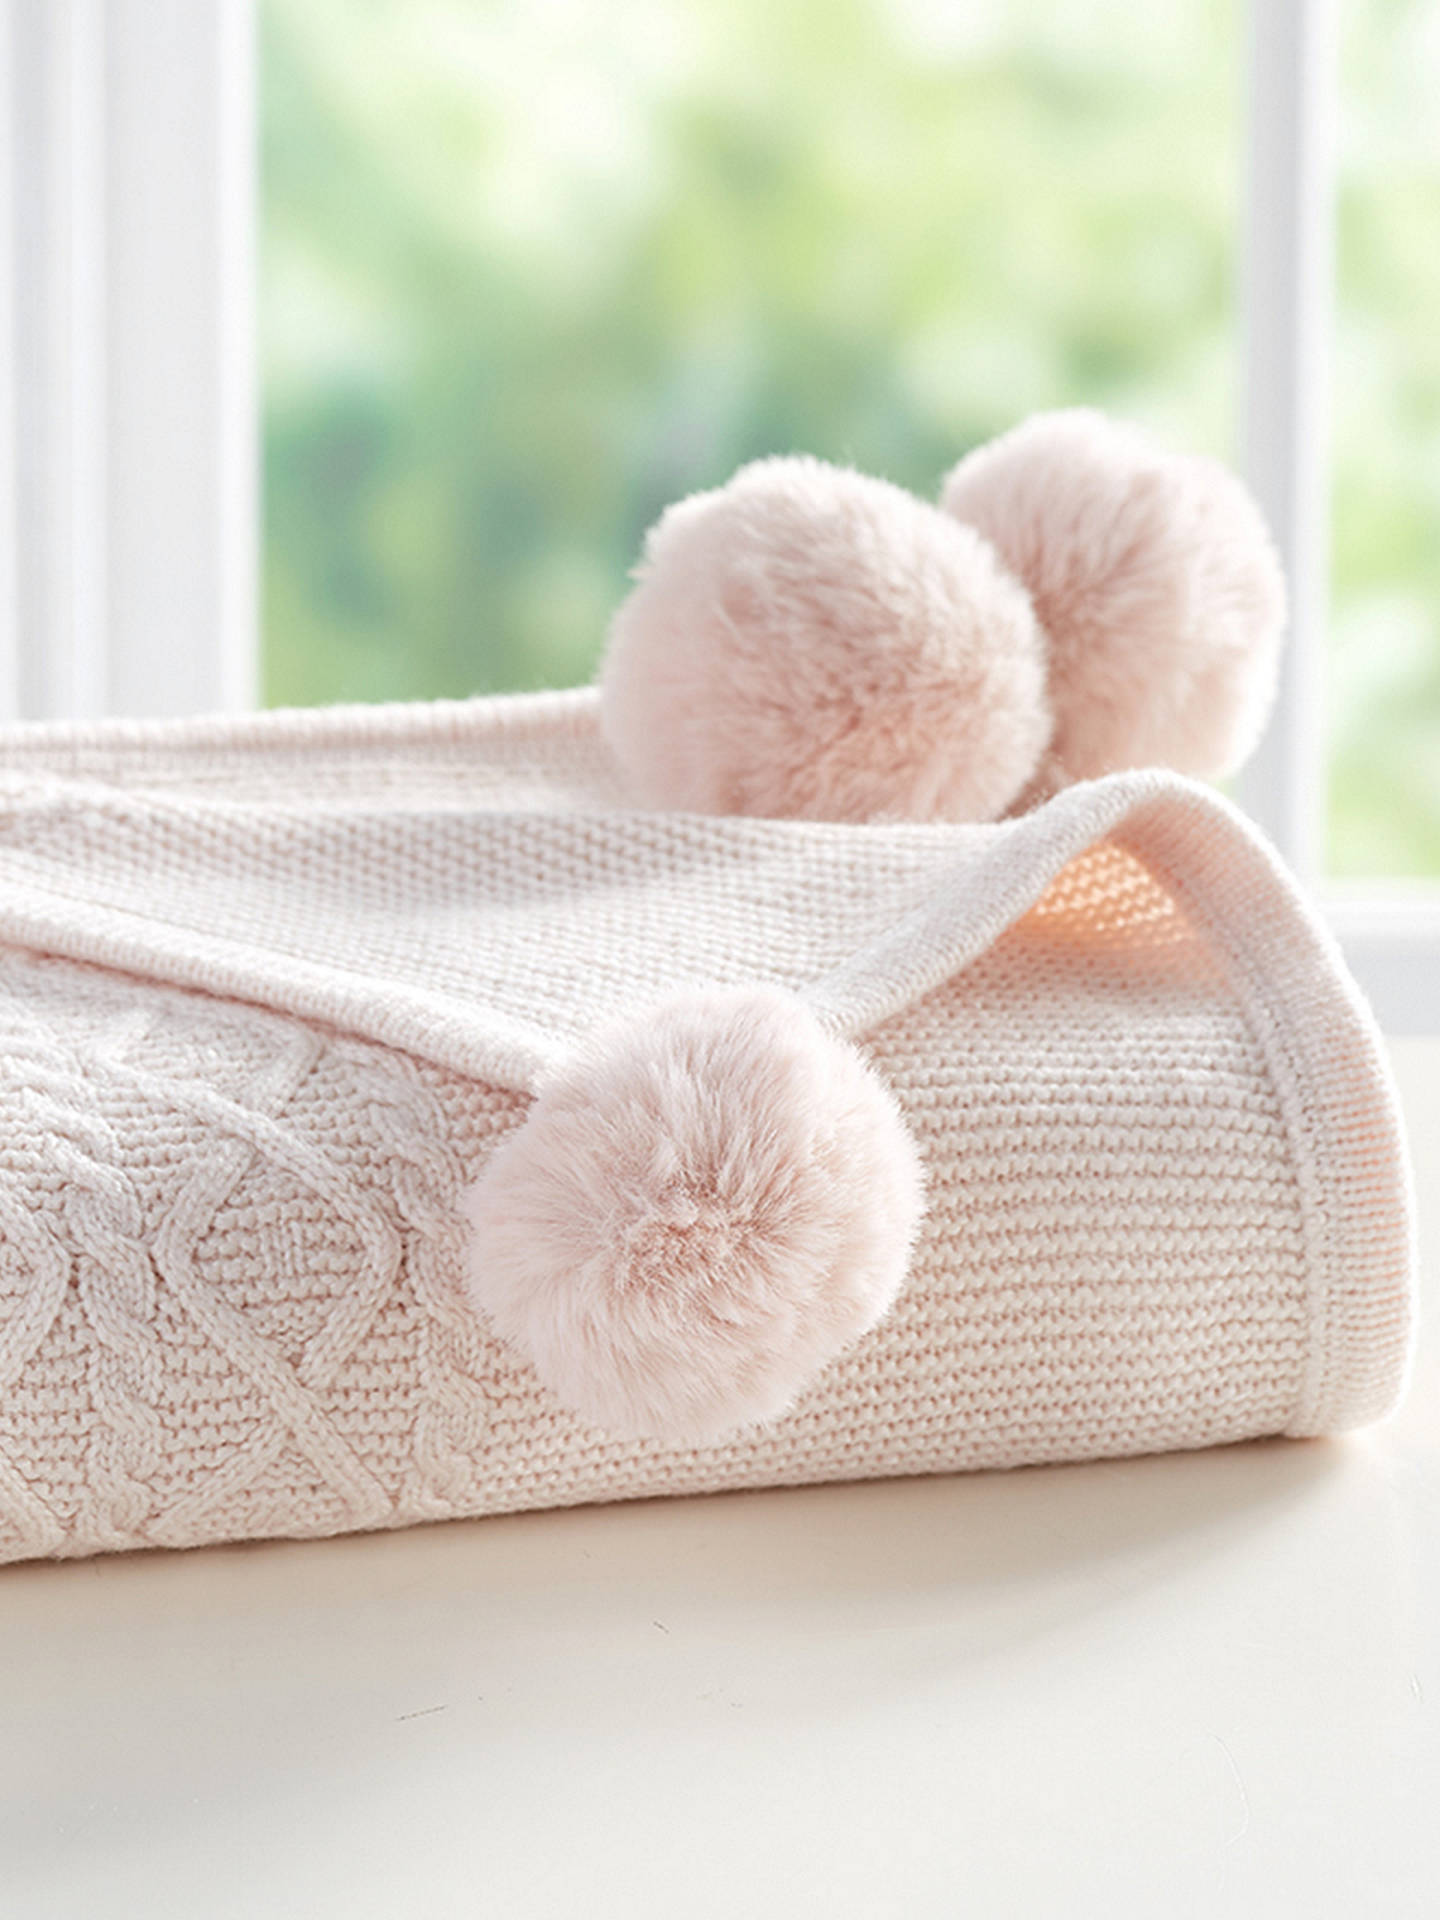 Buy Pottery Barn Kids Cable Knit Pom Pom Baby Blanket, Blush Online at johnlewis.com